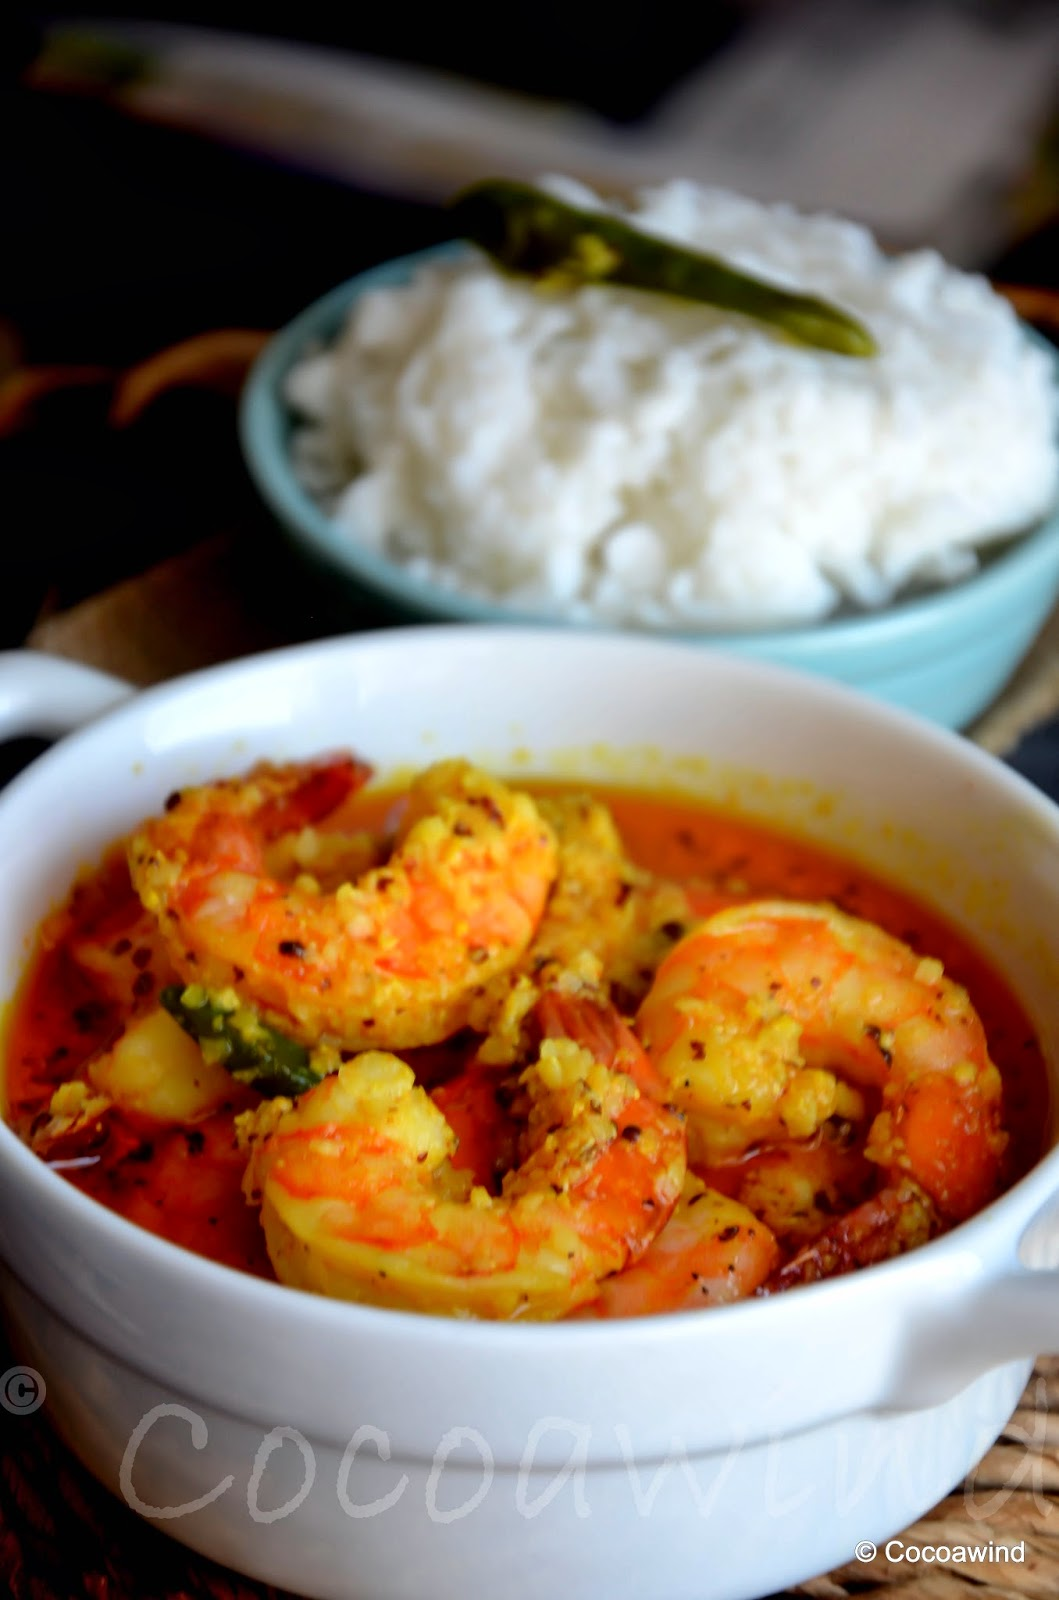 Bhapa Sorshe Chingri: Steamed Shrimps in Mustard Gravy